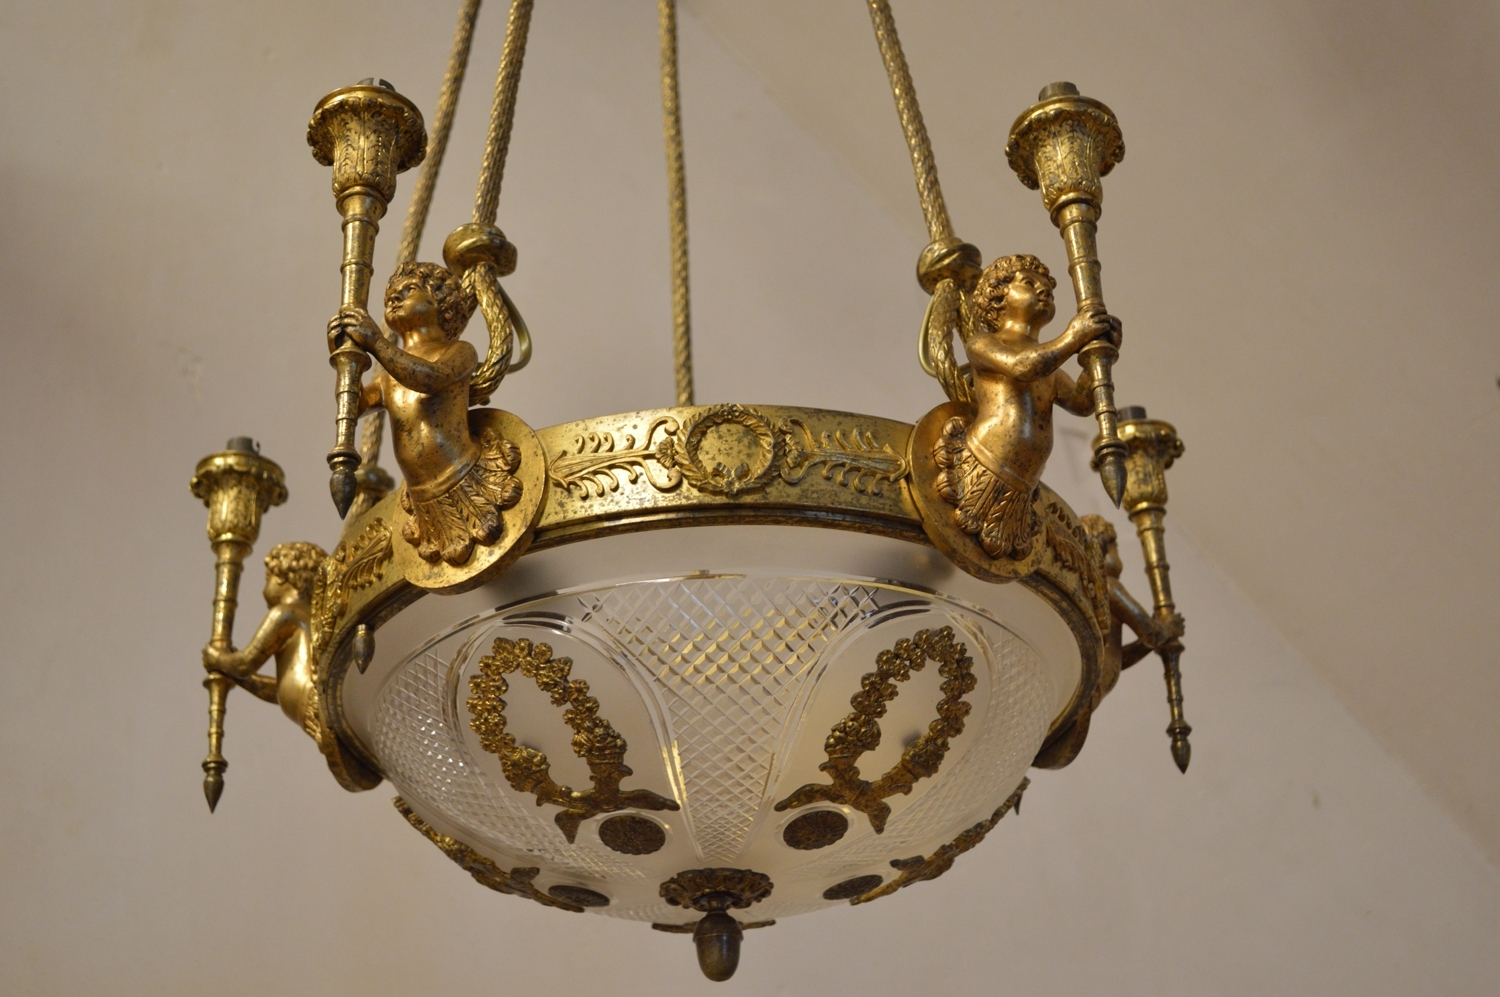 Antique Louis Xvi Style Chandelier With Cherubs In Gilt Bronze For Throughout Most Popular Antique Style Chandeliers (View 2 of 20)